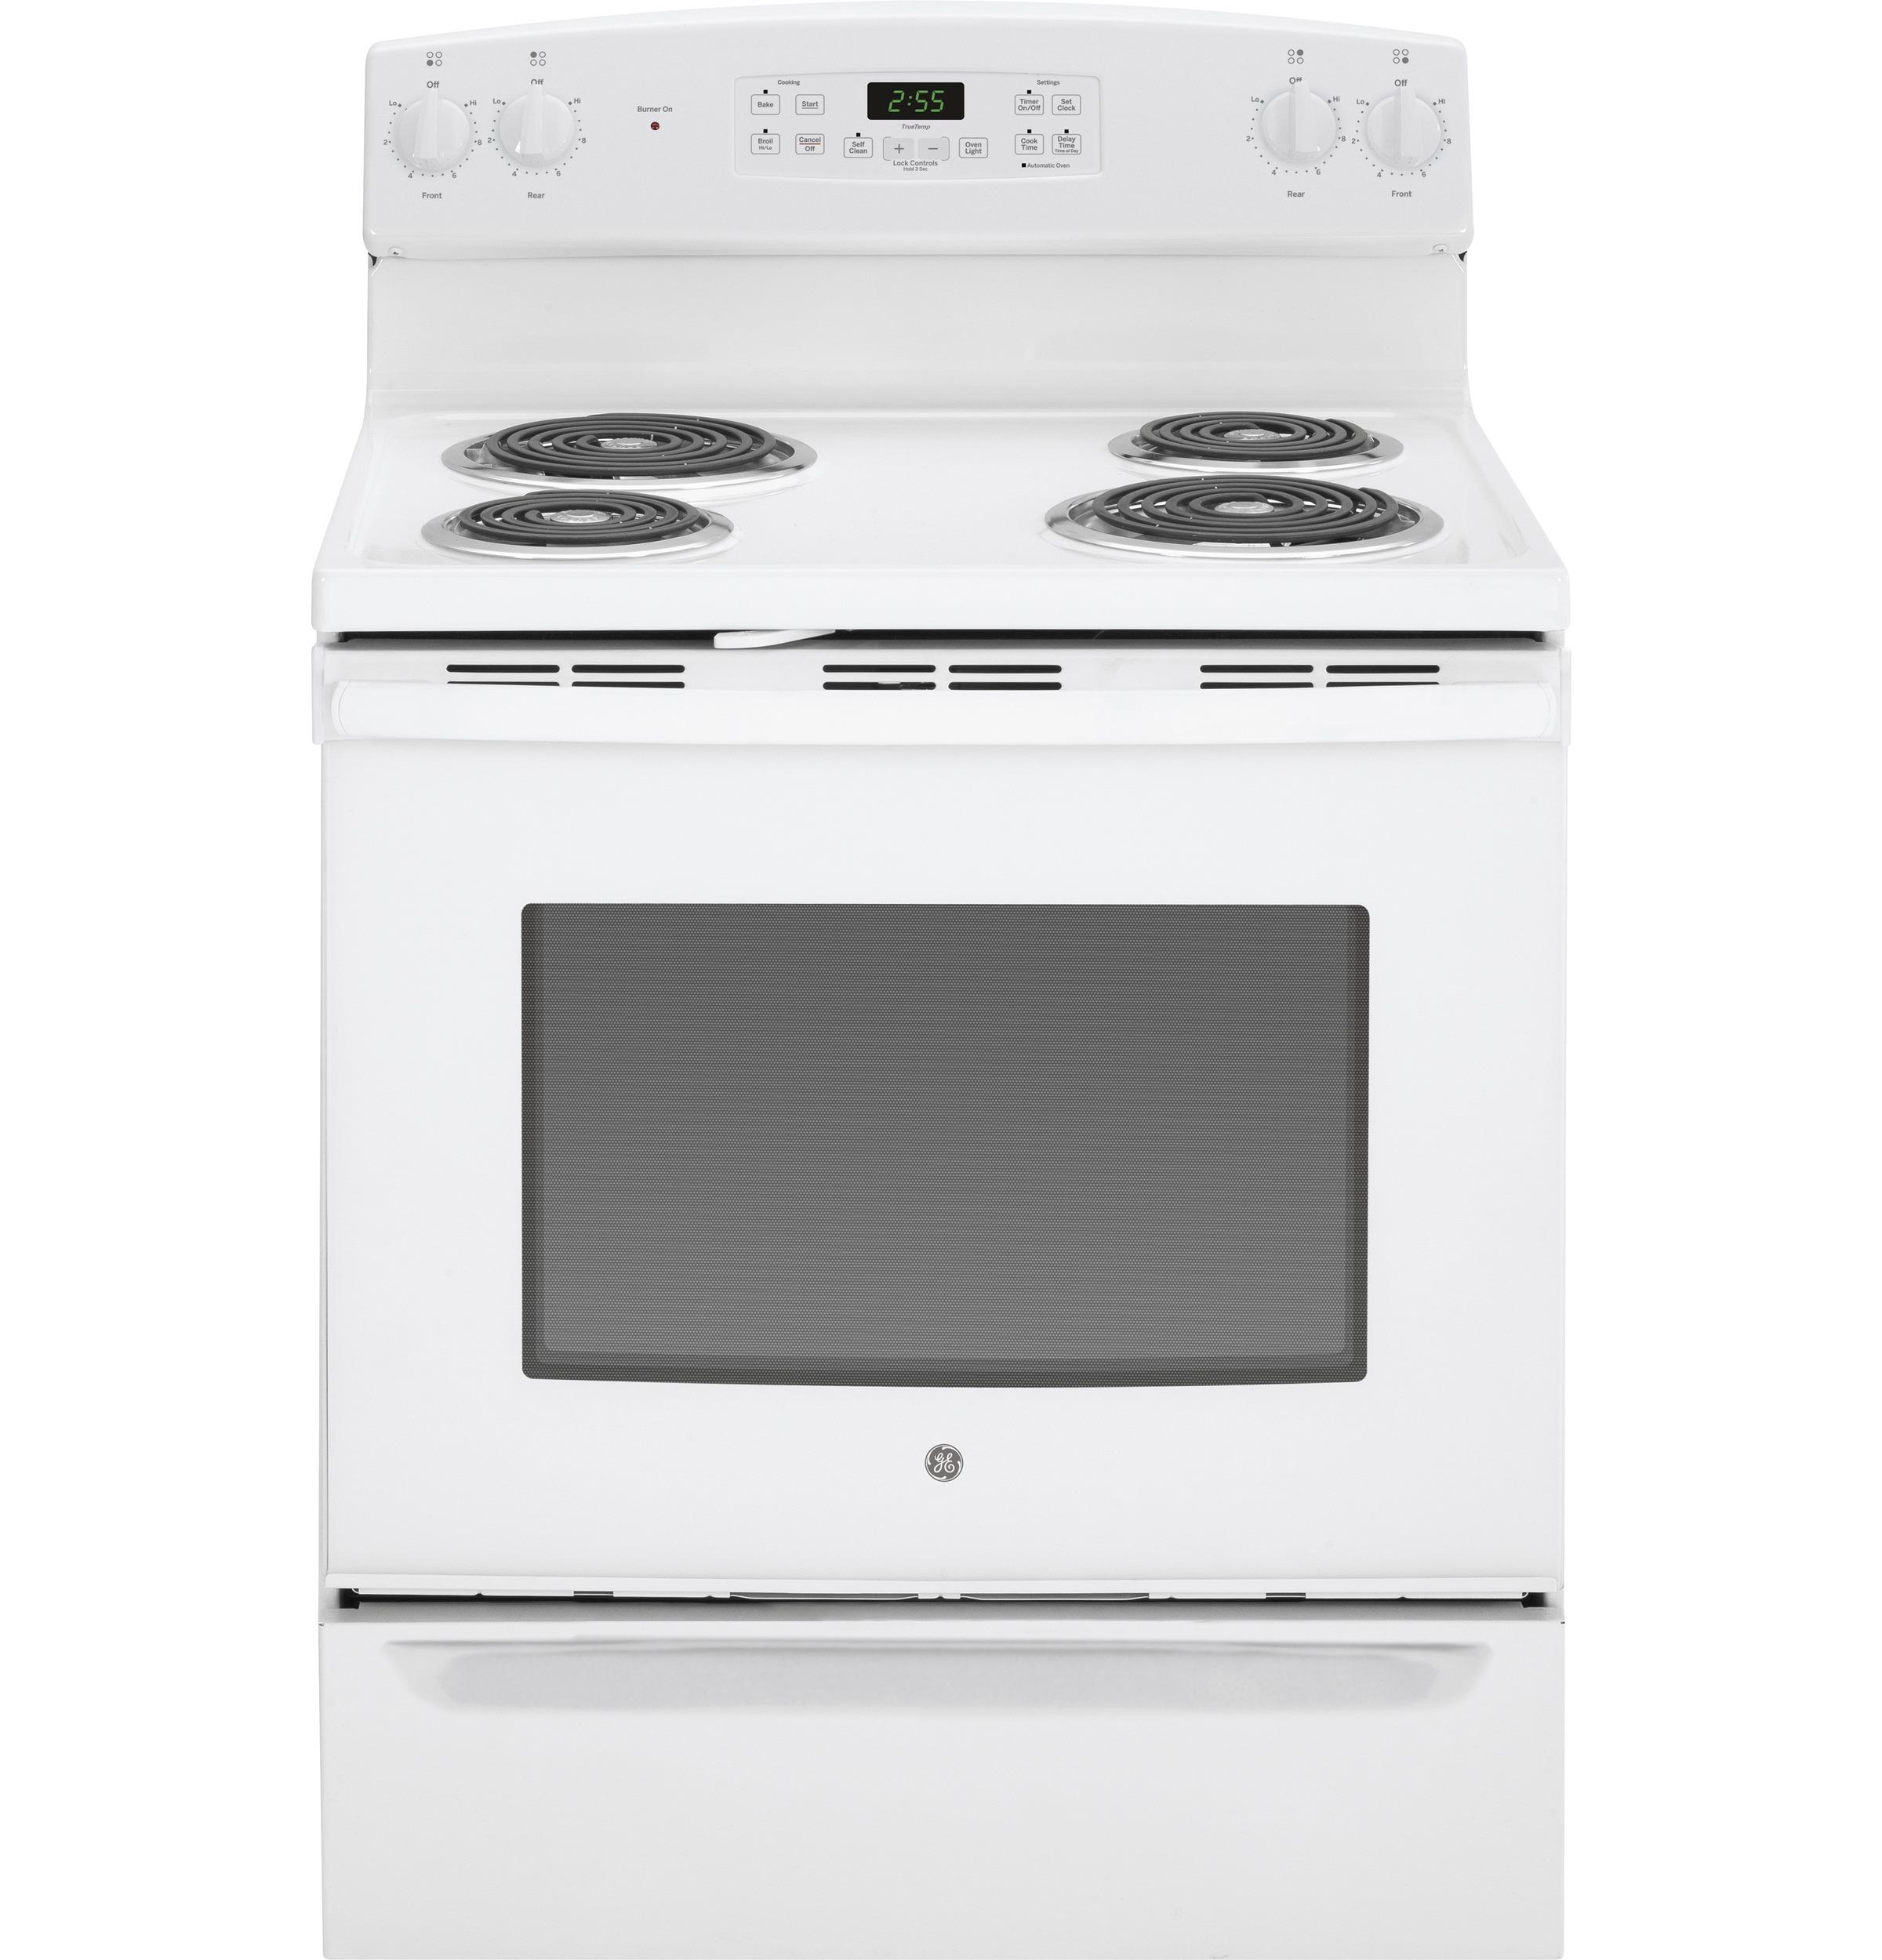 "GE Appliances GE Electric Ranges 30"" Free-Standing Electric Range - Item Number: JB255DJWW"